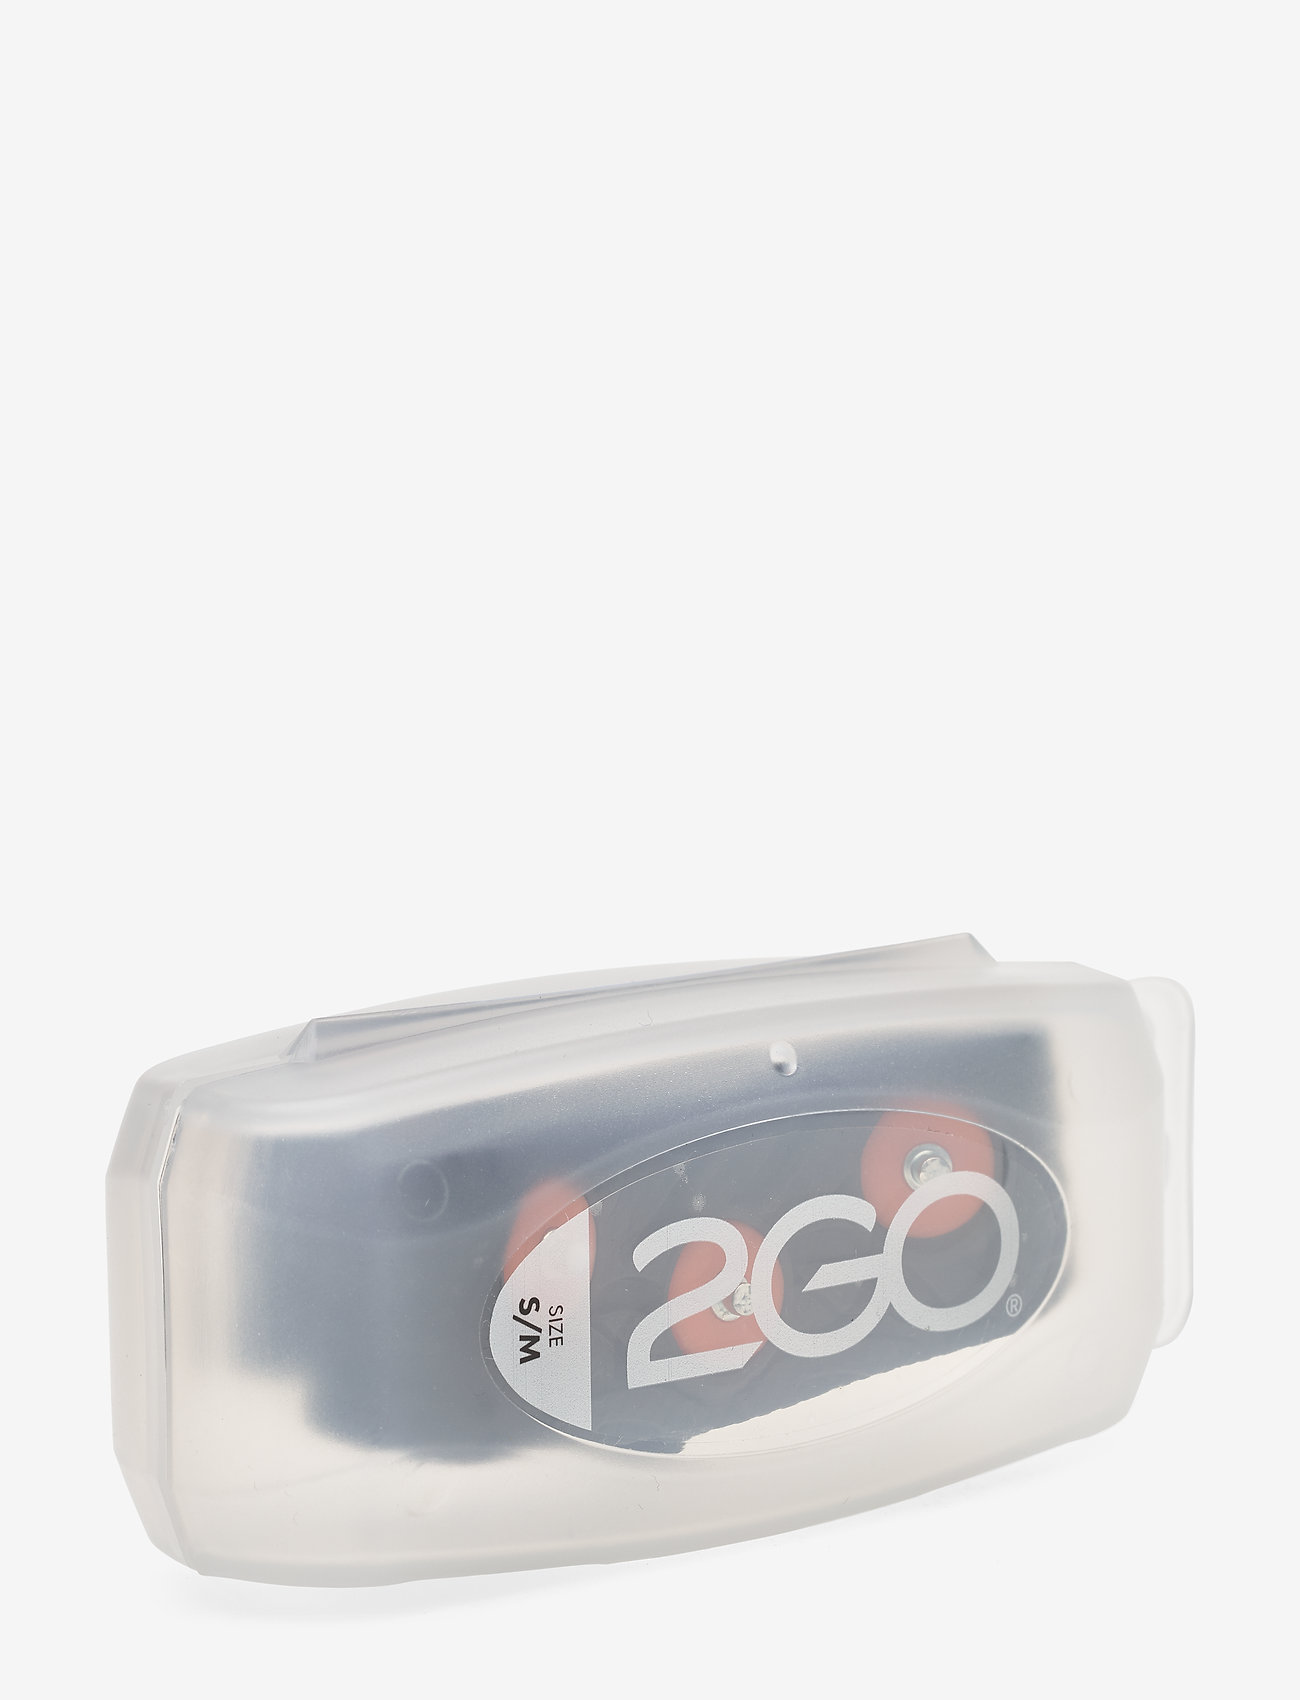 2GO - 2GO Free - shoe protection - black - 1